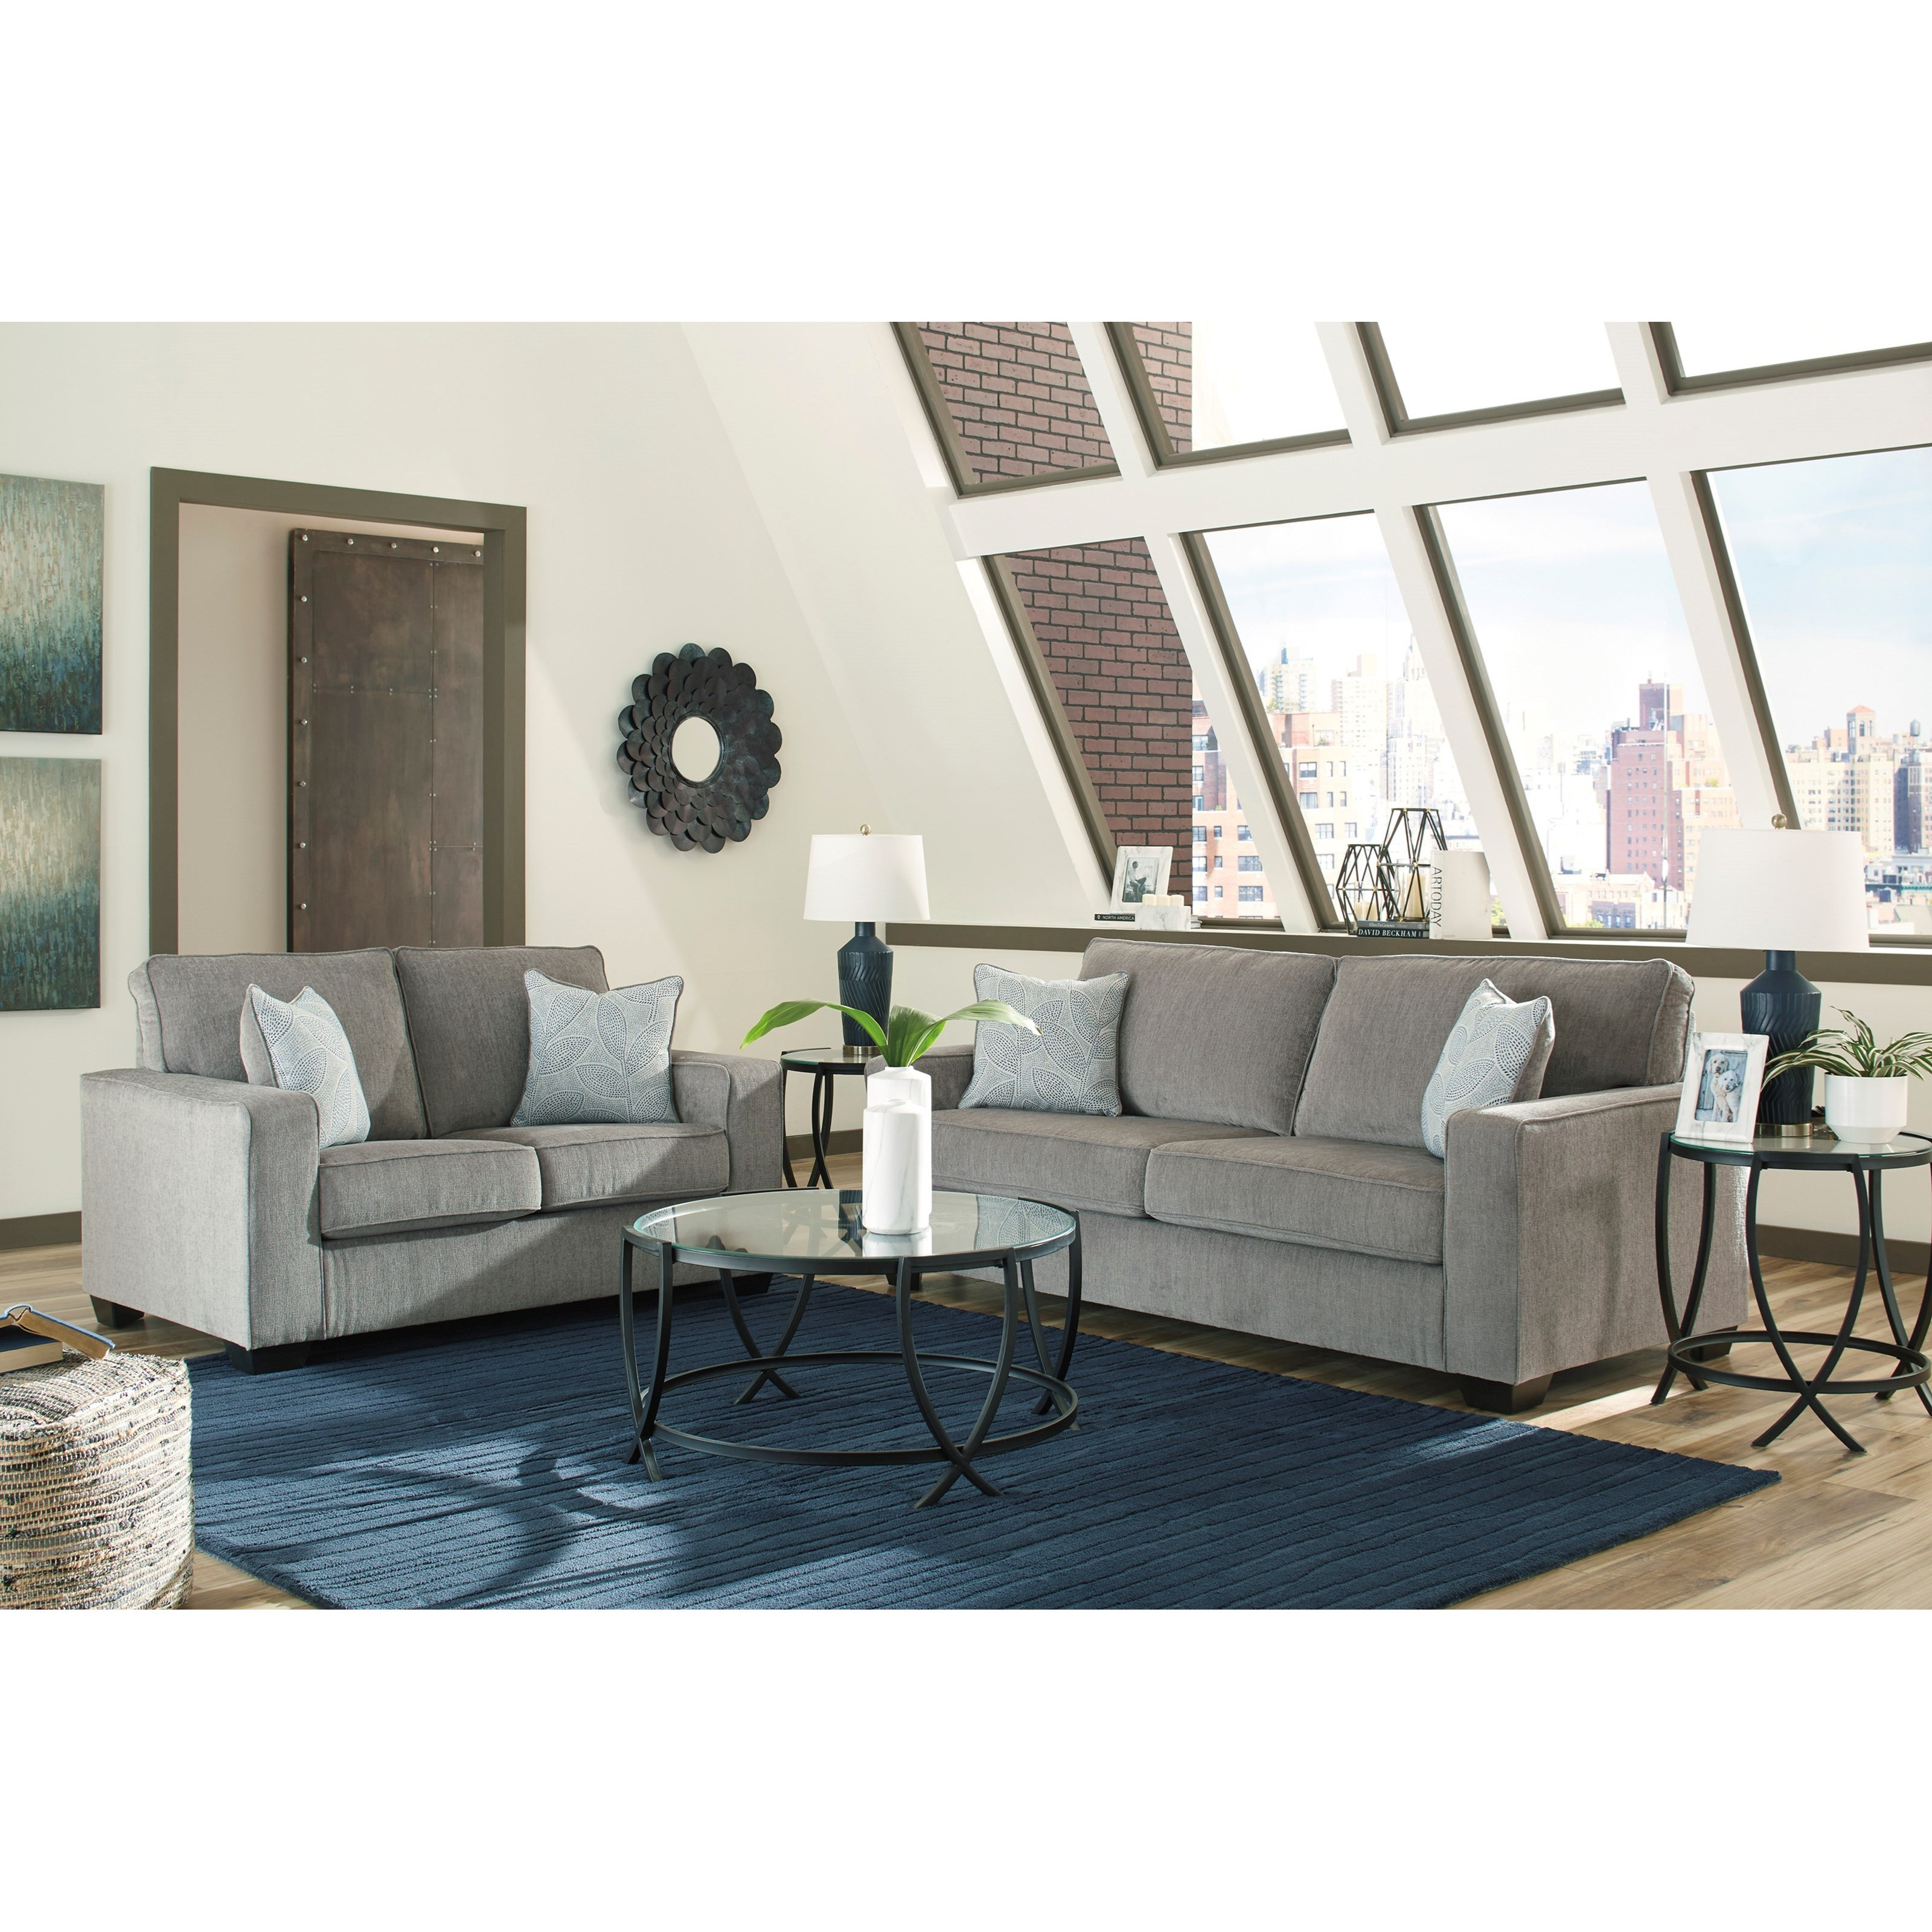 Altari Living Room Group by Signature Design by Ashley at Rife's Home Furniture